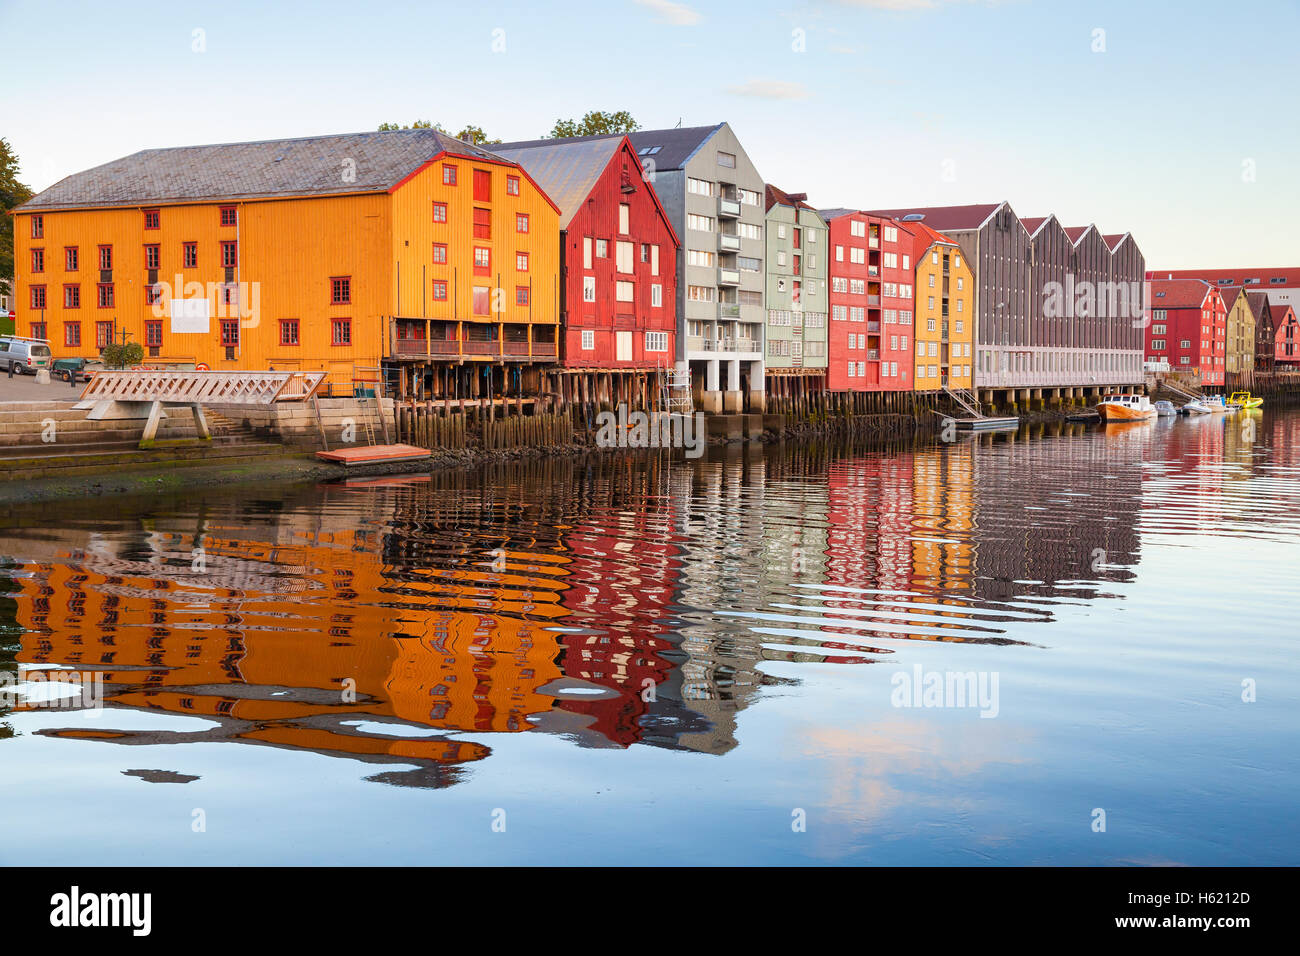 Colorful old wooden houses stand in a row along the river coast. Trondheim, Norway Stock Photo